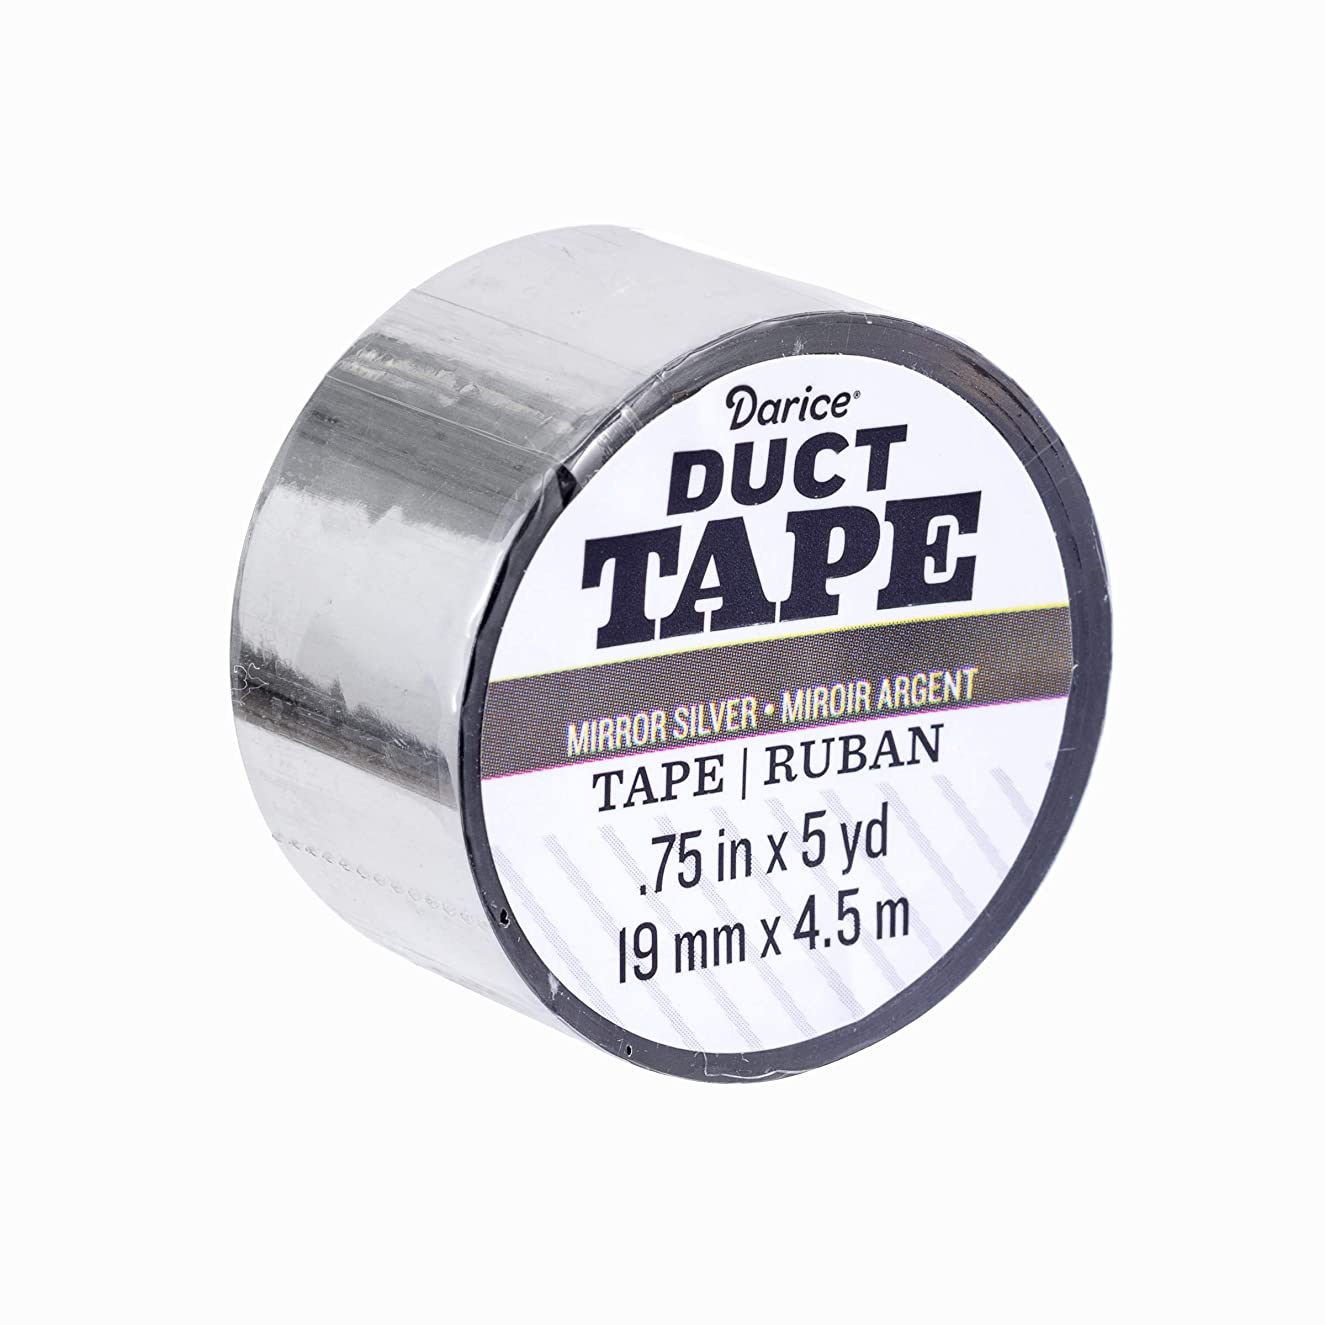 Darice 30079631 Mini Roll: Mirror Silver, 0.75 Inches x 5 Yards Duct Tape,